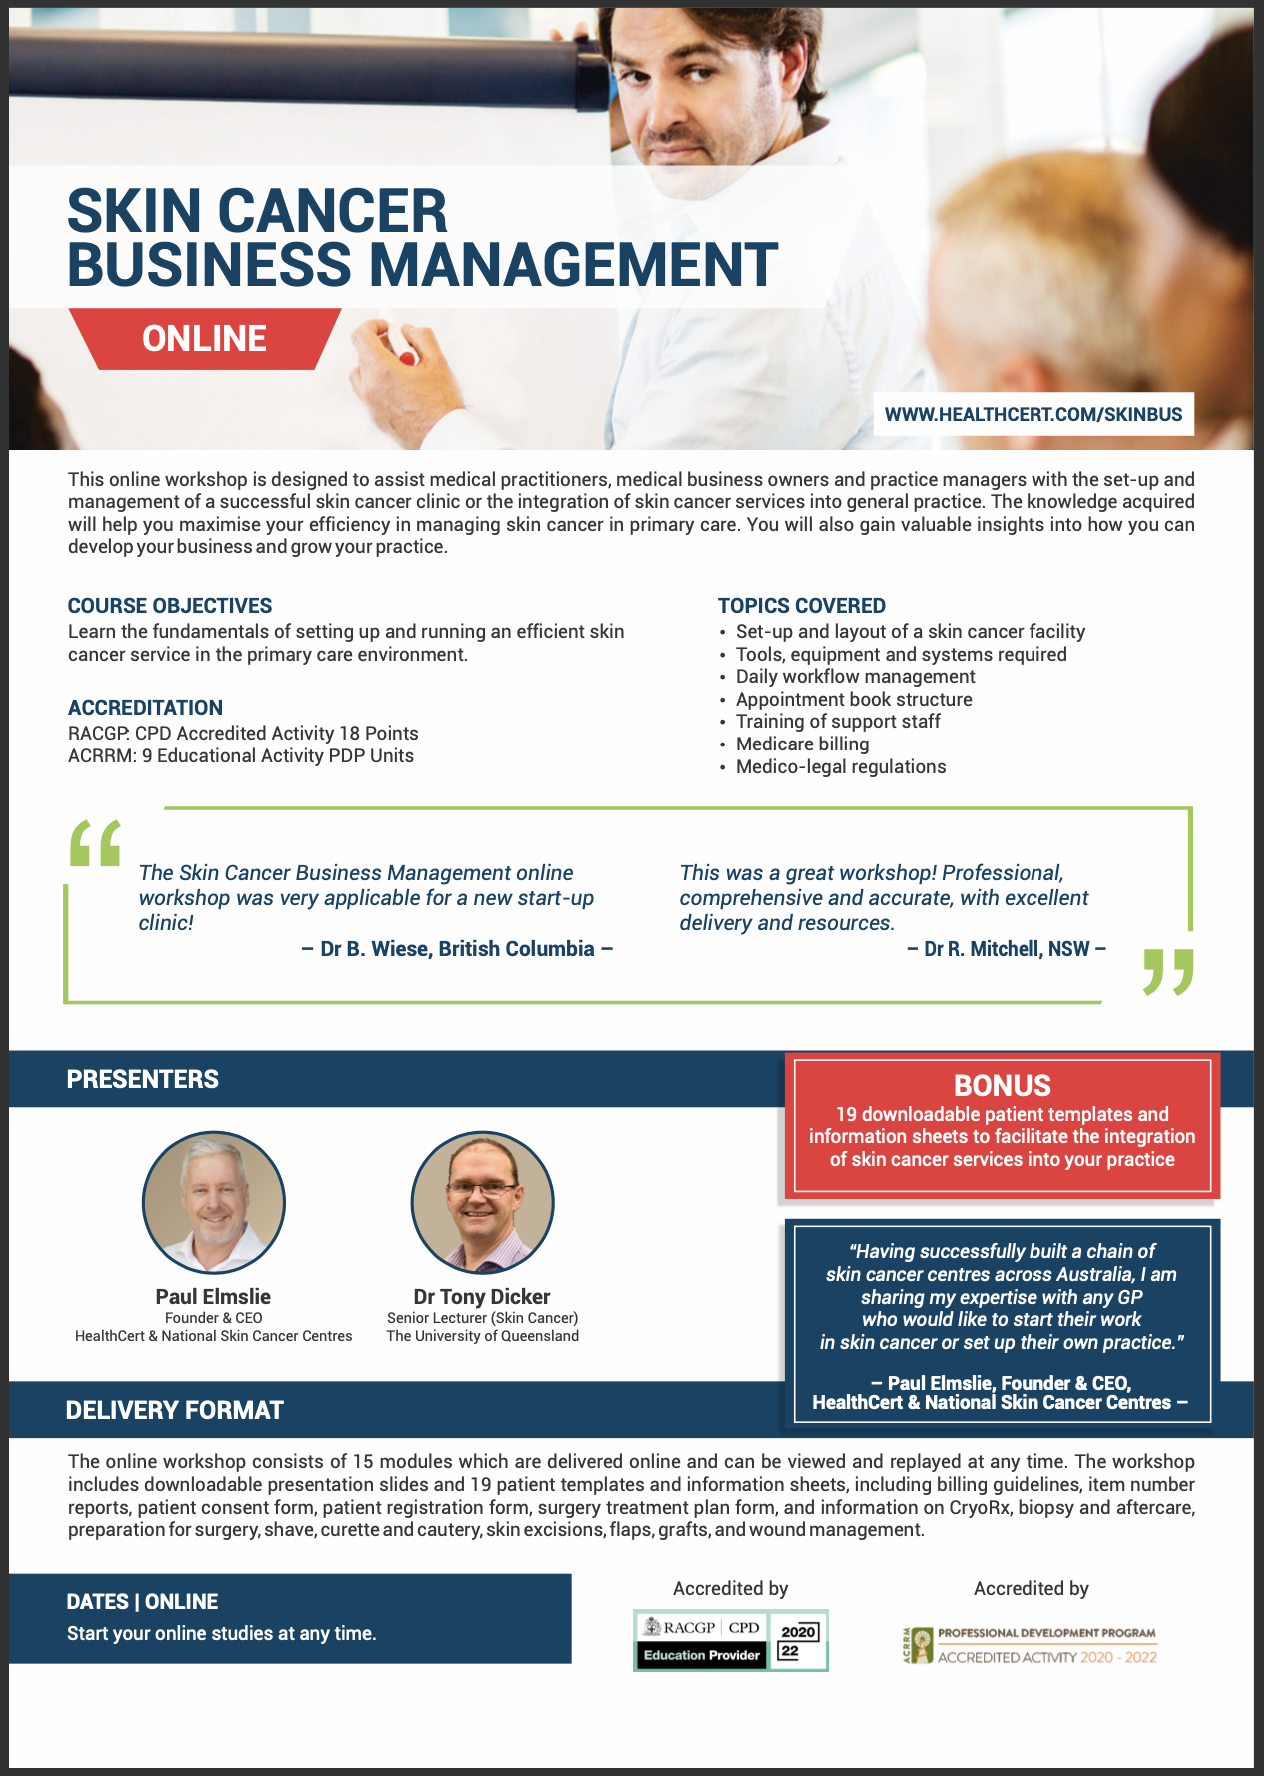 Skin Cancer Business Management Course Brochure